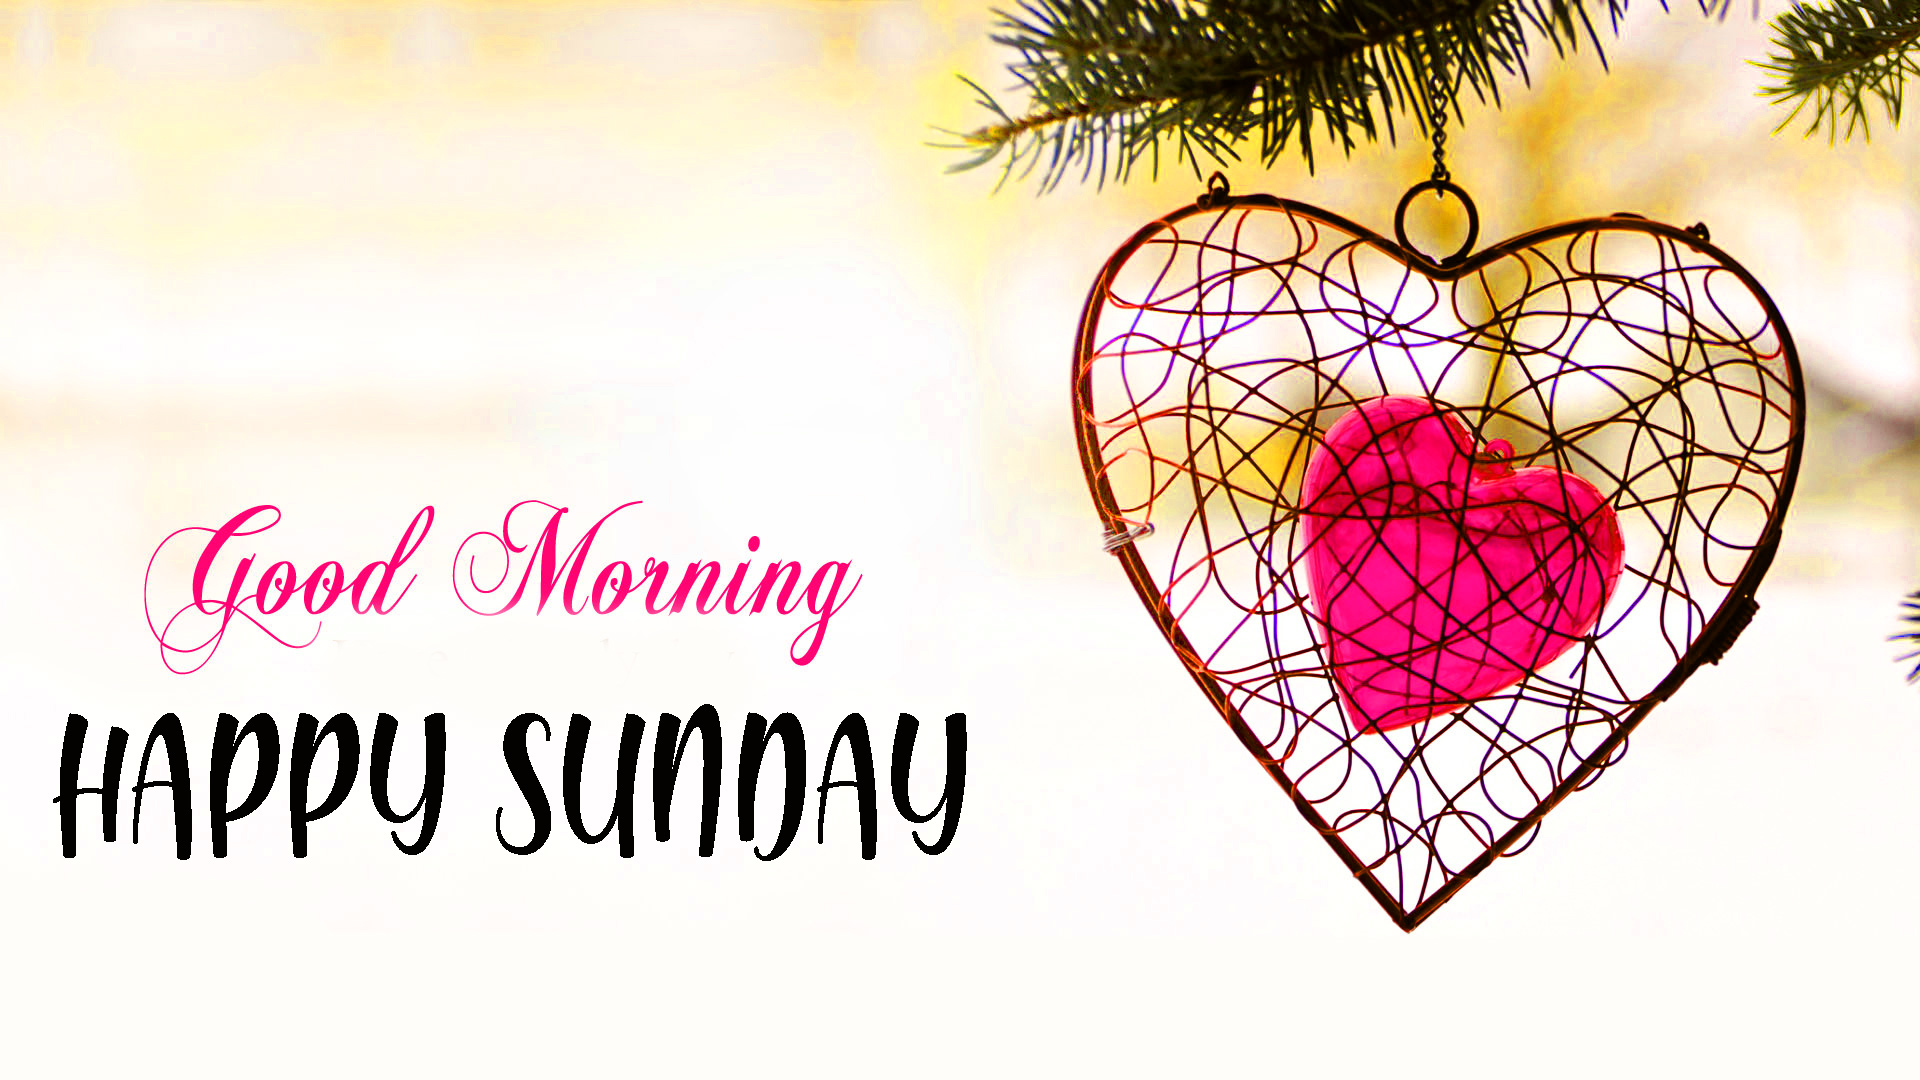 Sunday good morning Images Wallpaper Pics for Lover